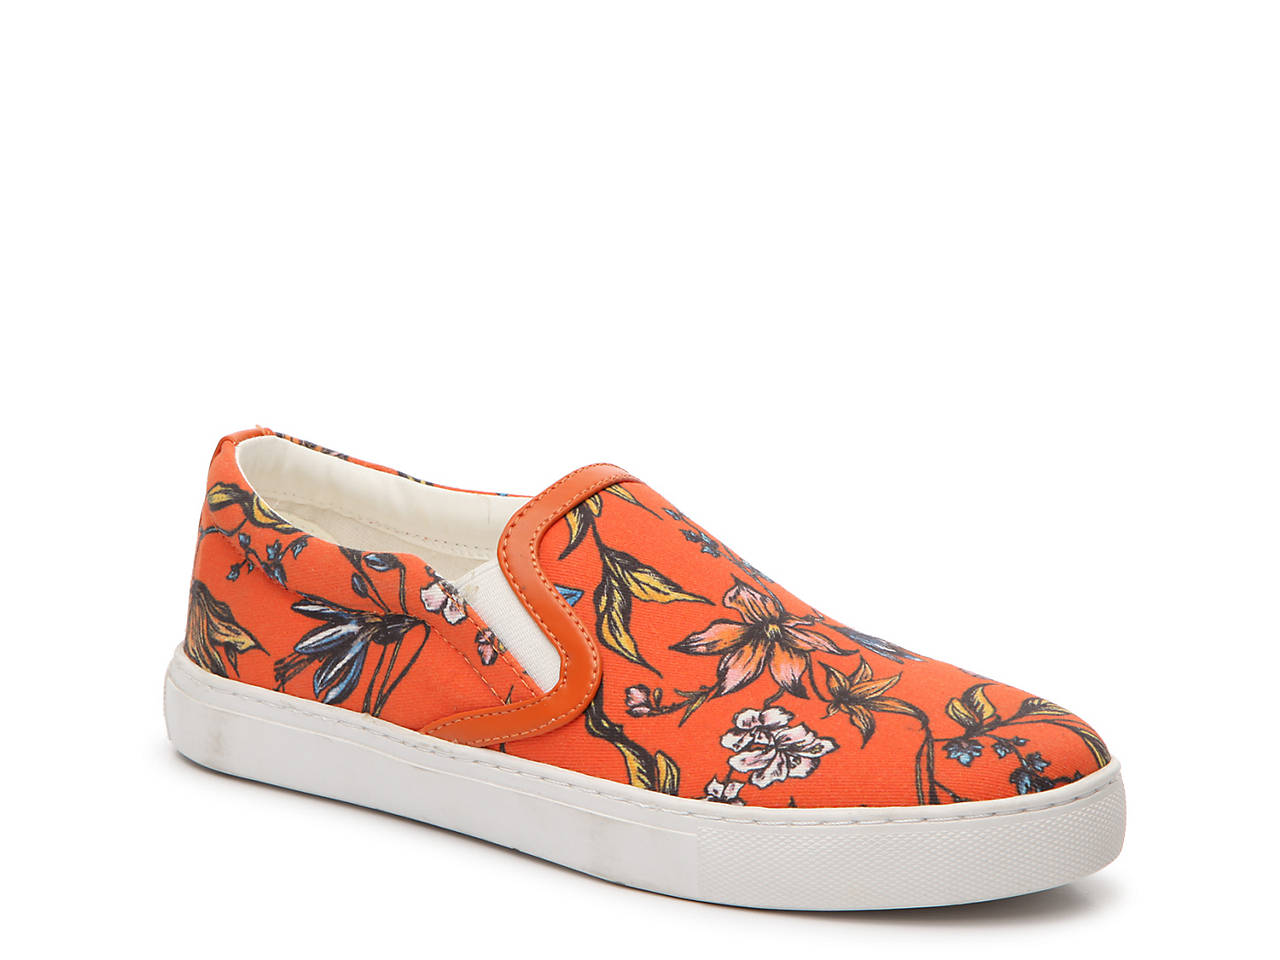 a0602d8b2c7237 Sam Edelman Pixie Slip-On Sneaker Women s Shoes